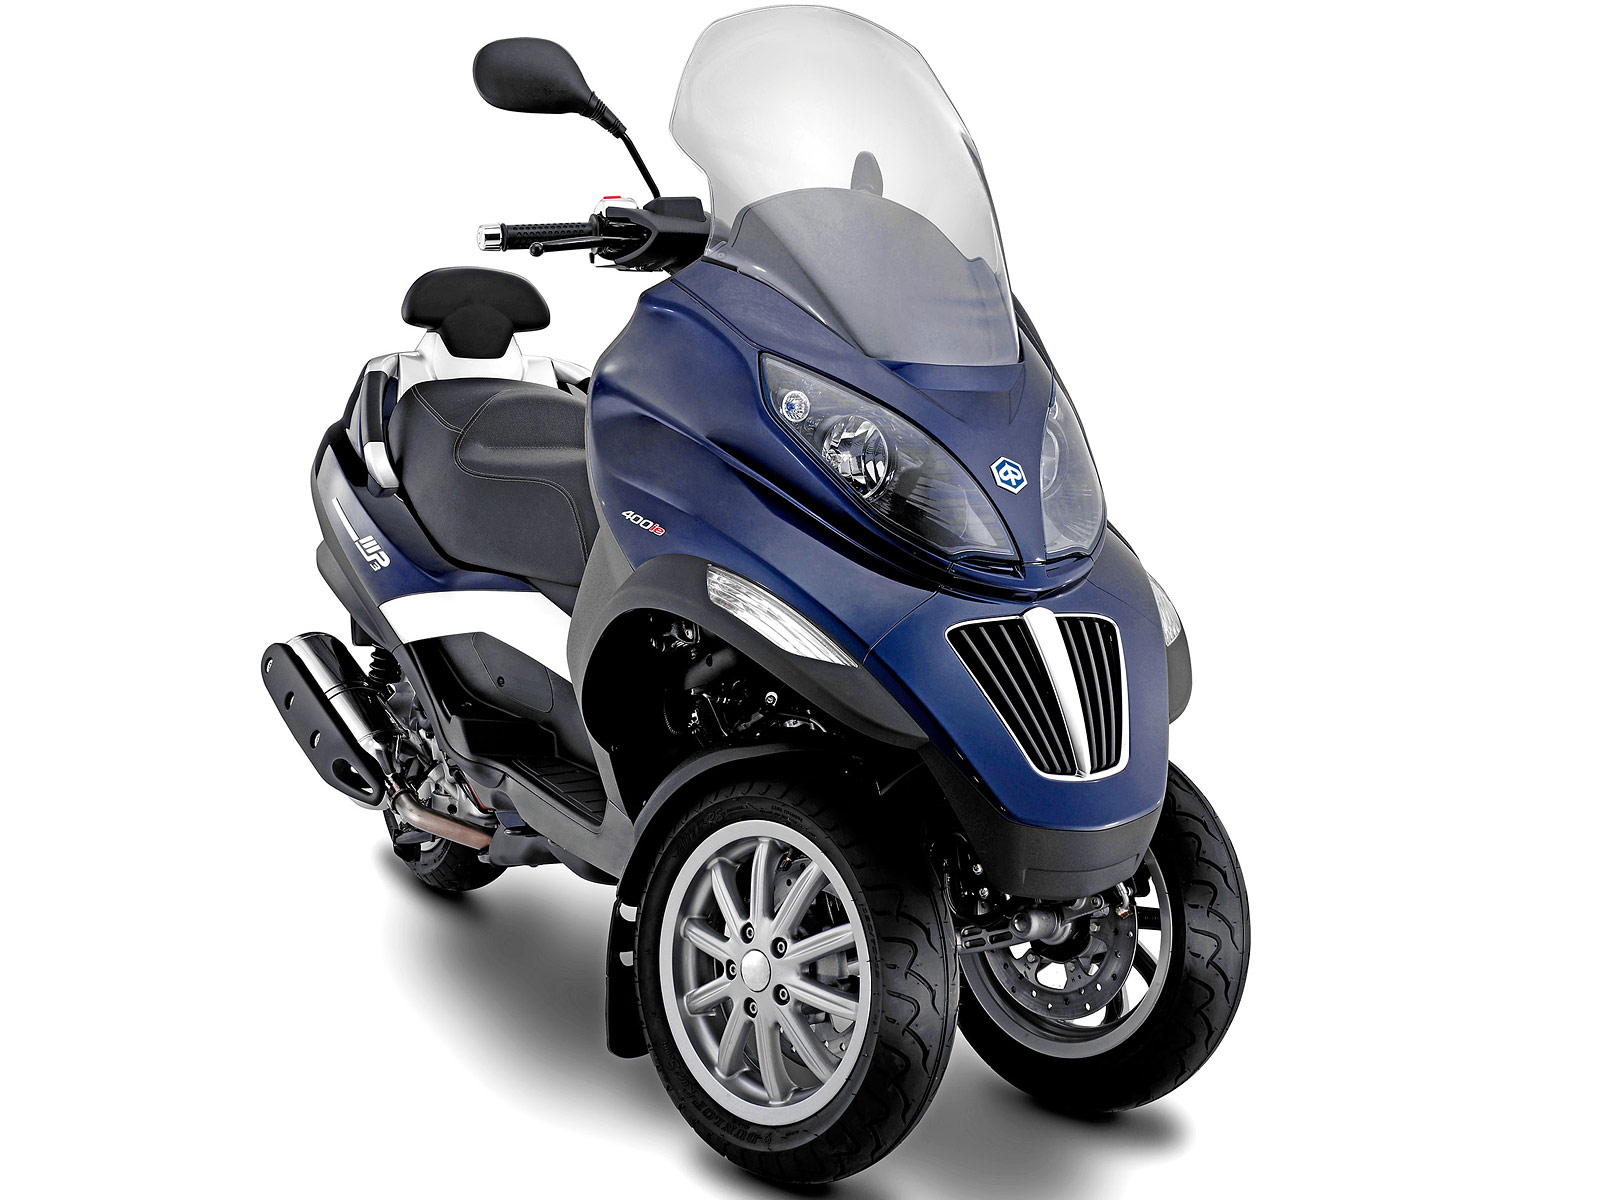 2013 piaggio mp3 400 scooter pictures review insurance. Black Bedroom Furniture Sets. Home Design Ideas